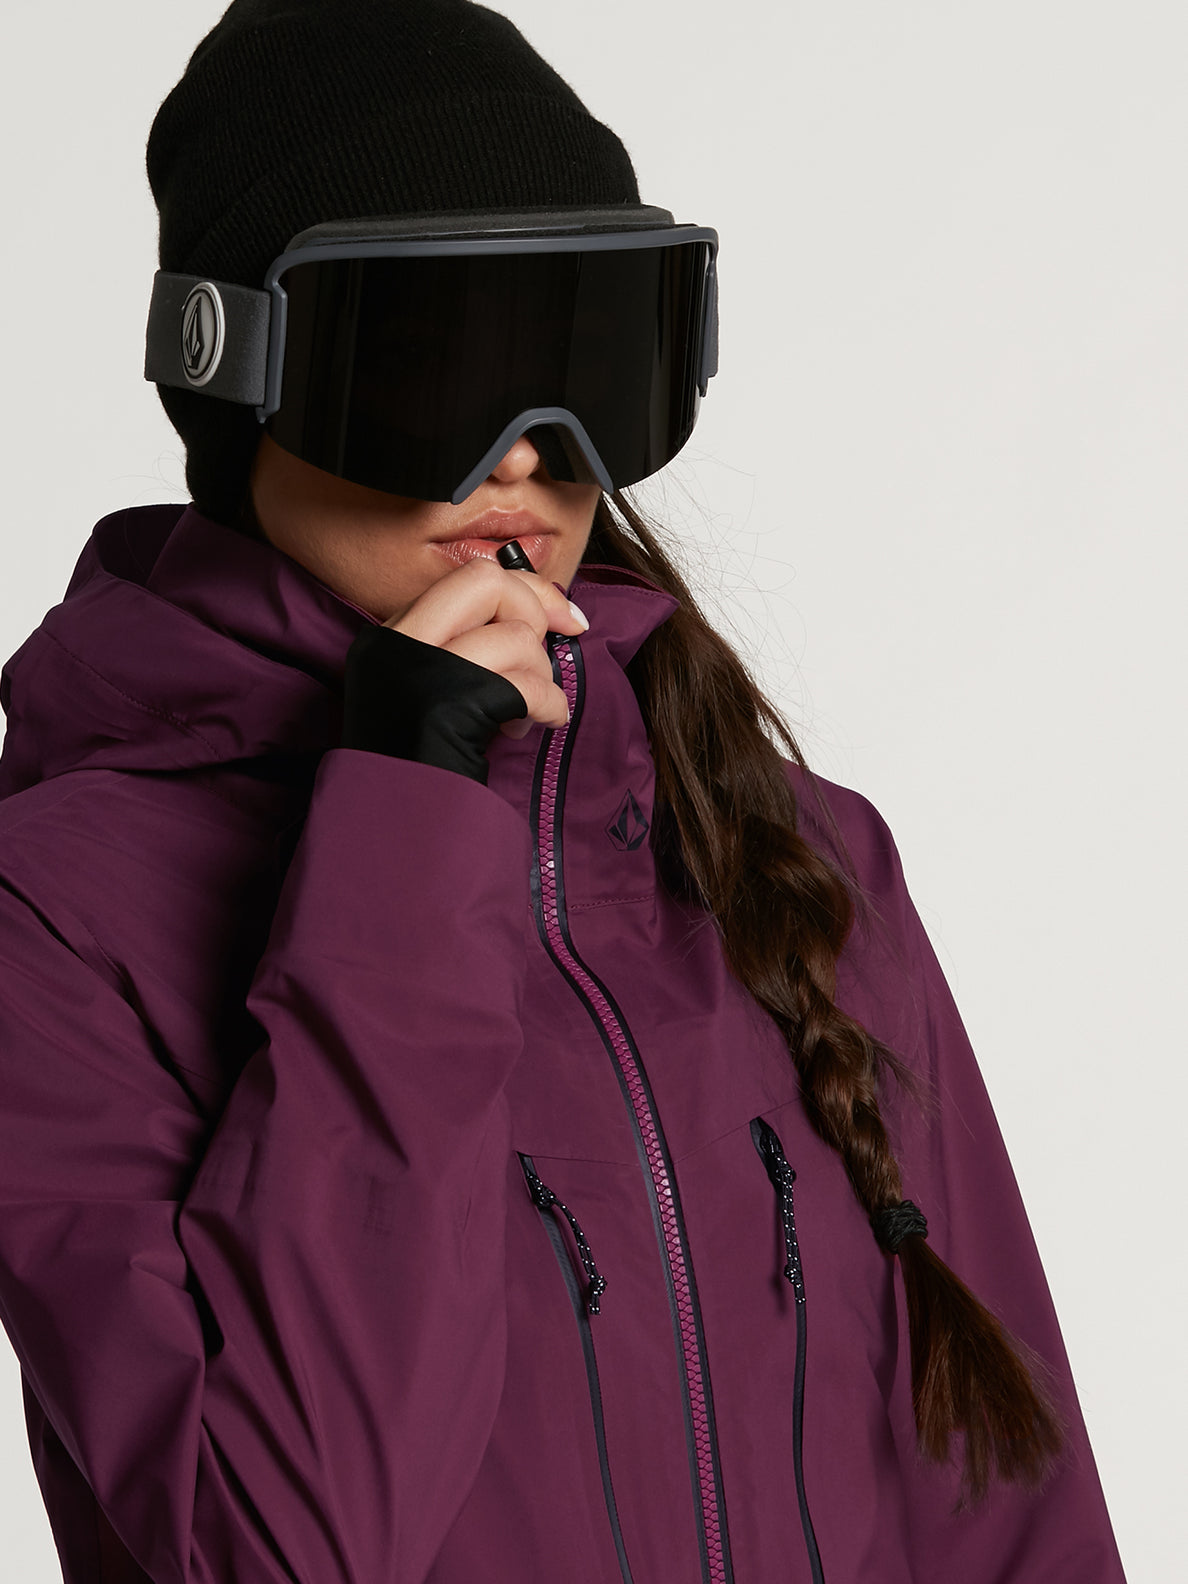 Womens VS Stretch GORE-TEX Jacket - Vibrant Purple (H0652103_VIB) [6]